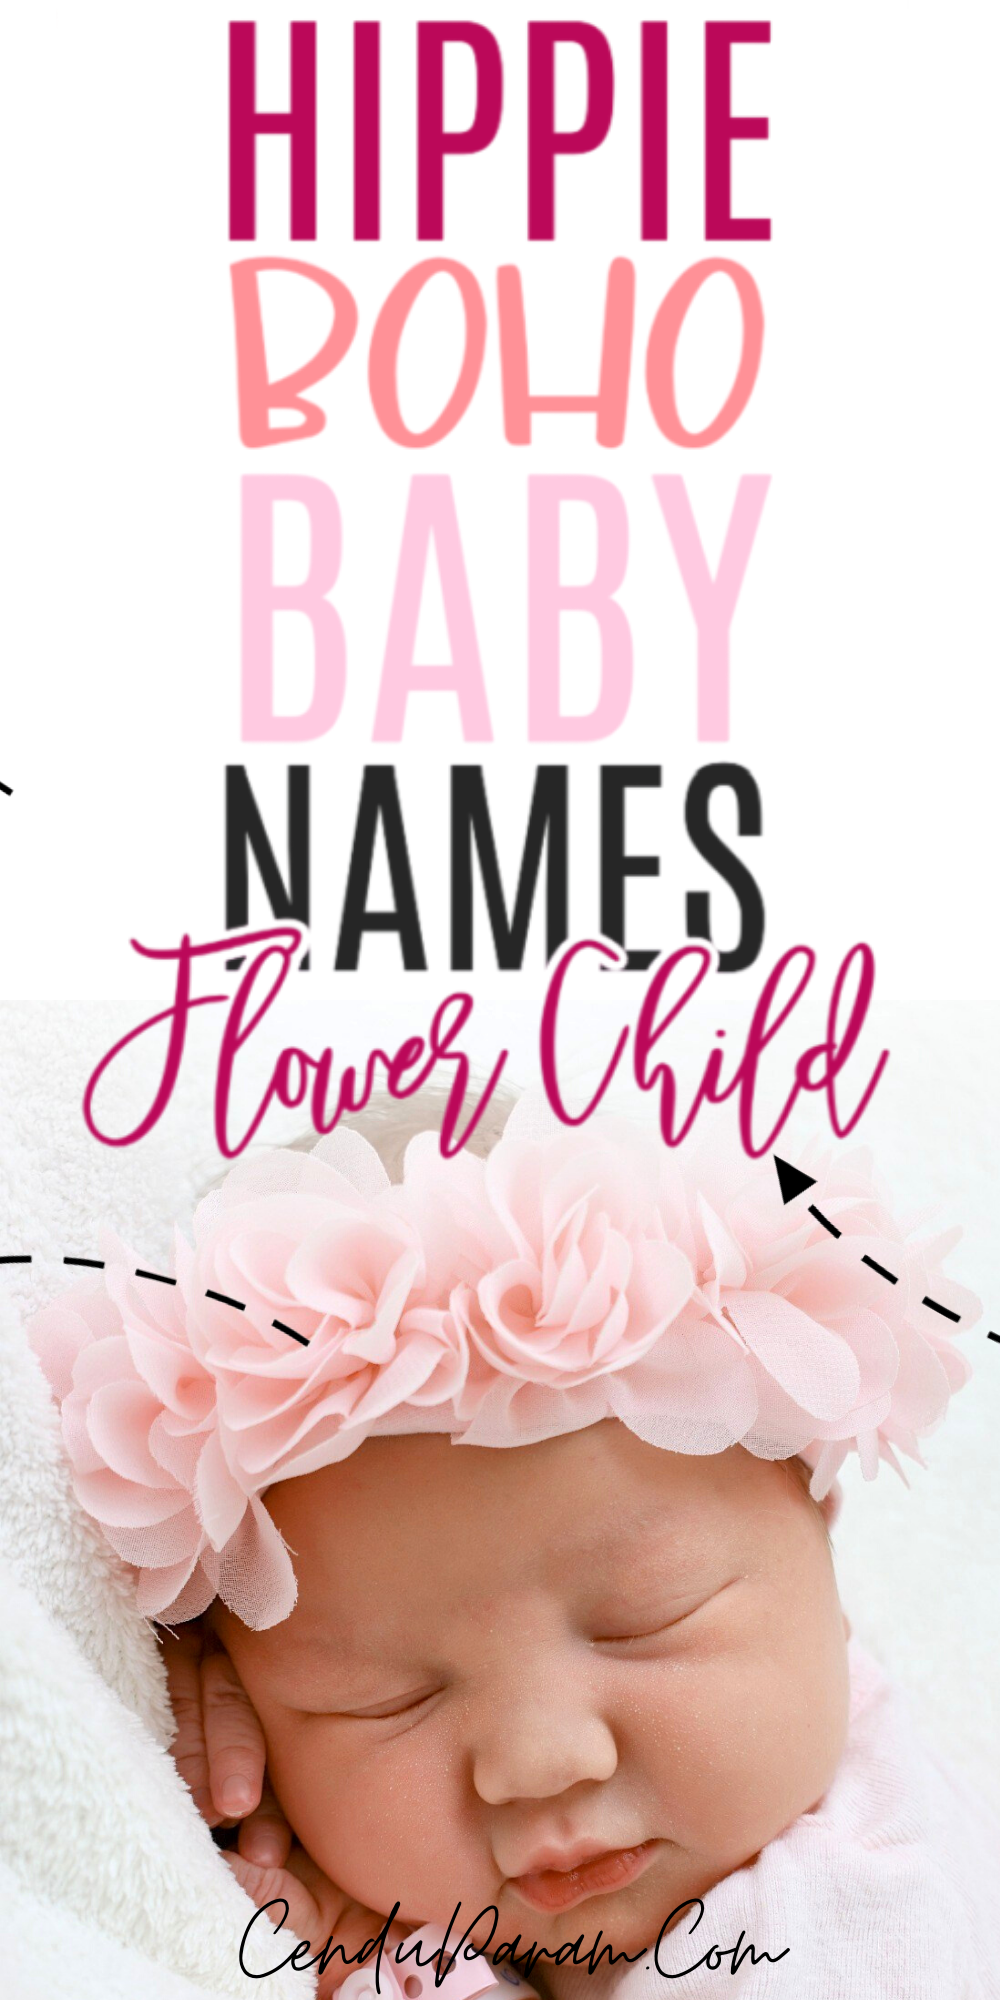 Hippie Earthy Boho Baby Names For Your Flower Child